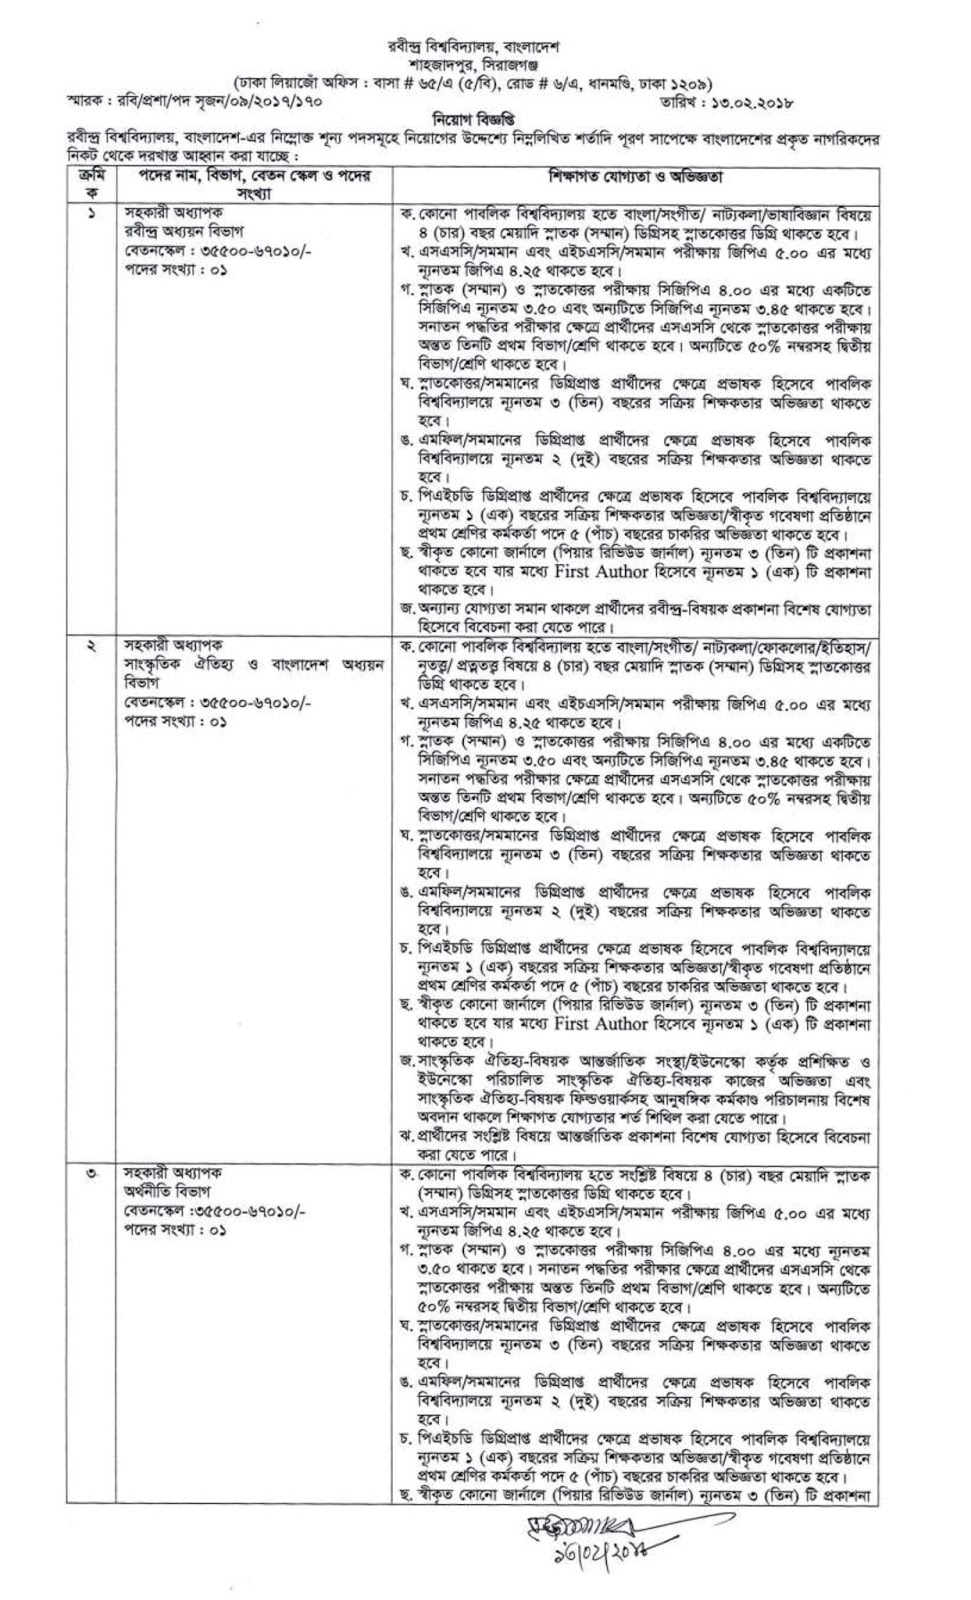 Rabindra University, Bangladesh Recruitment Circular 2018